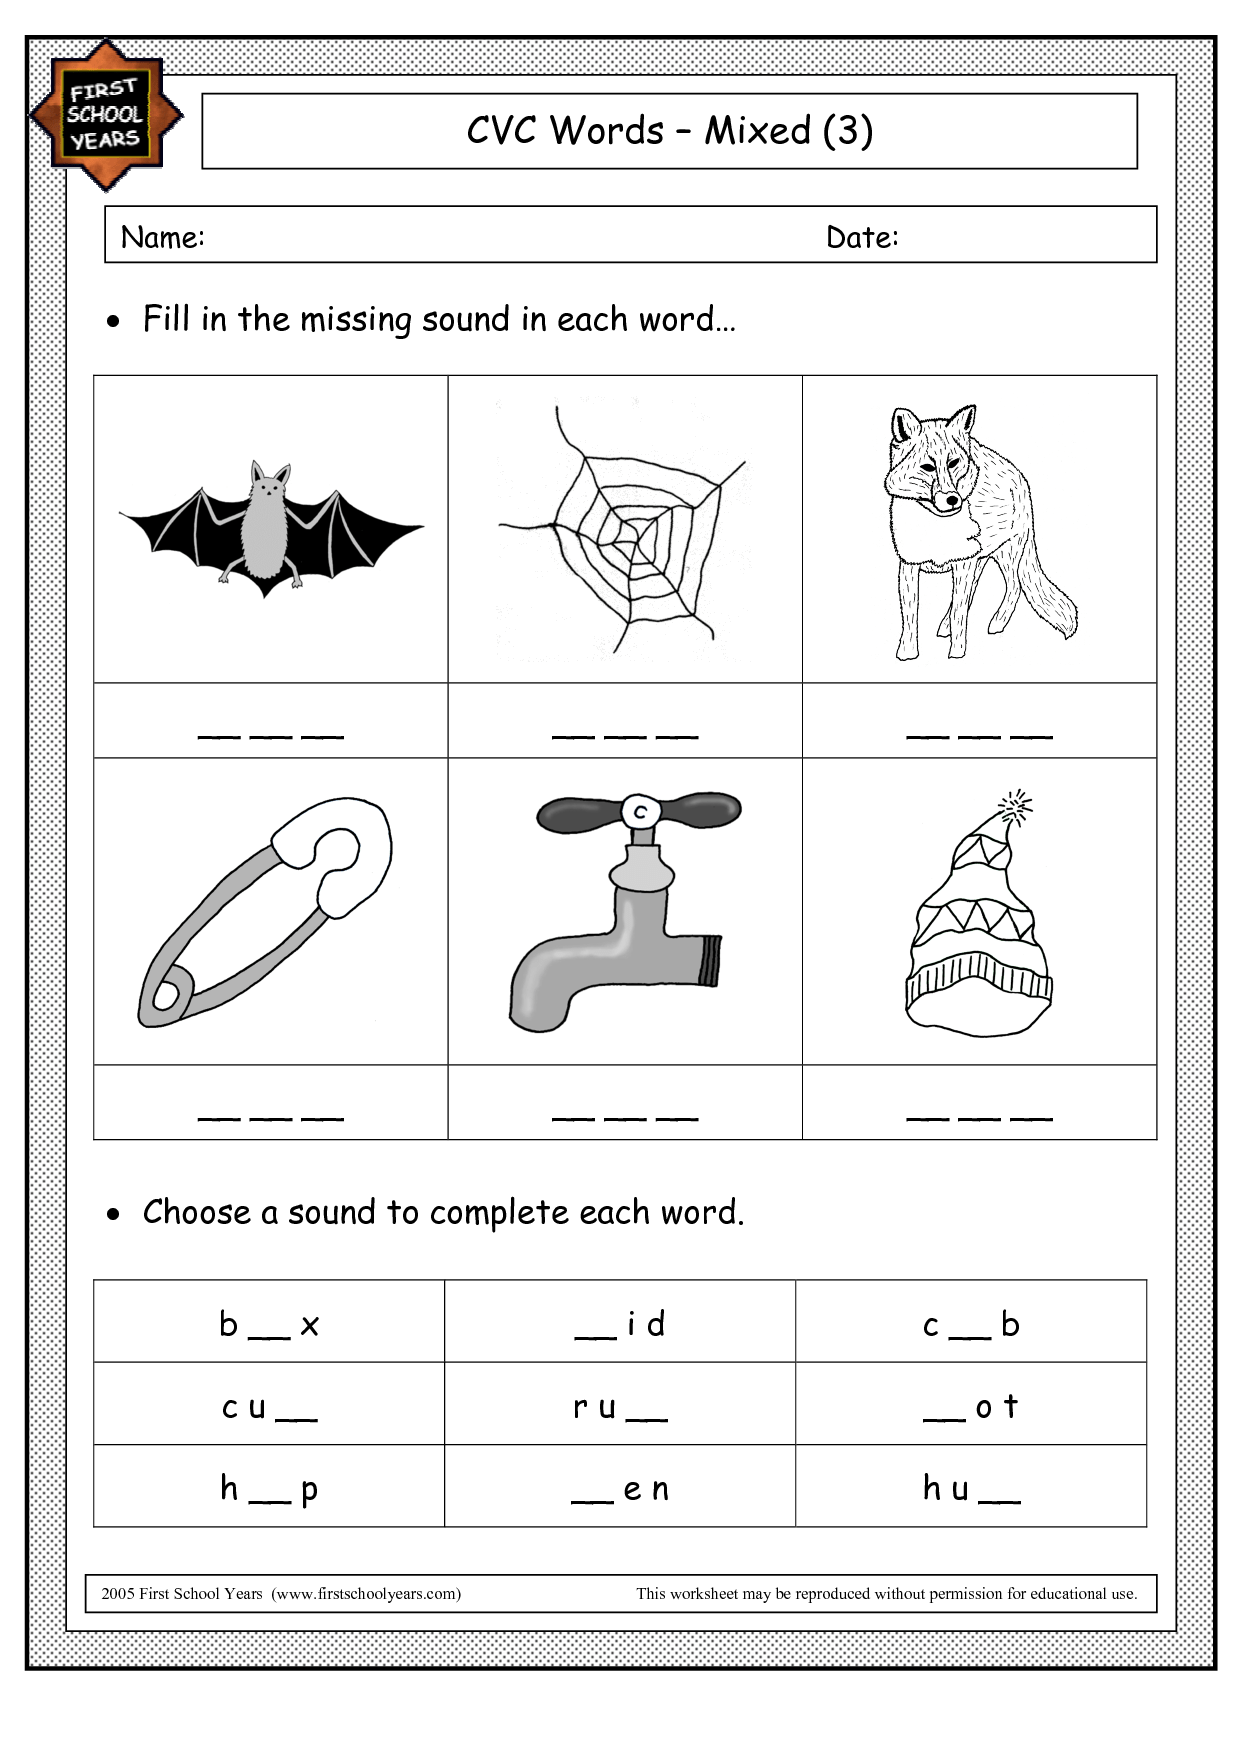 Free Cvc Worksheets For Preschoolers